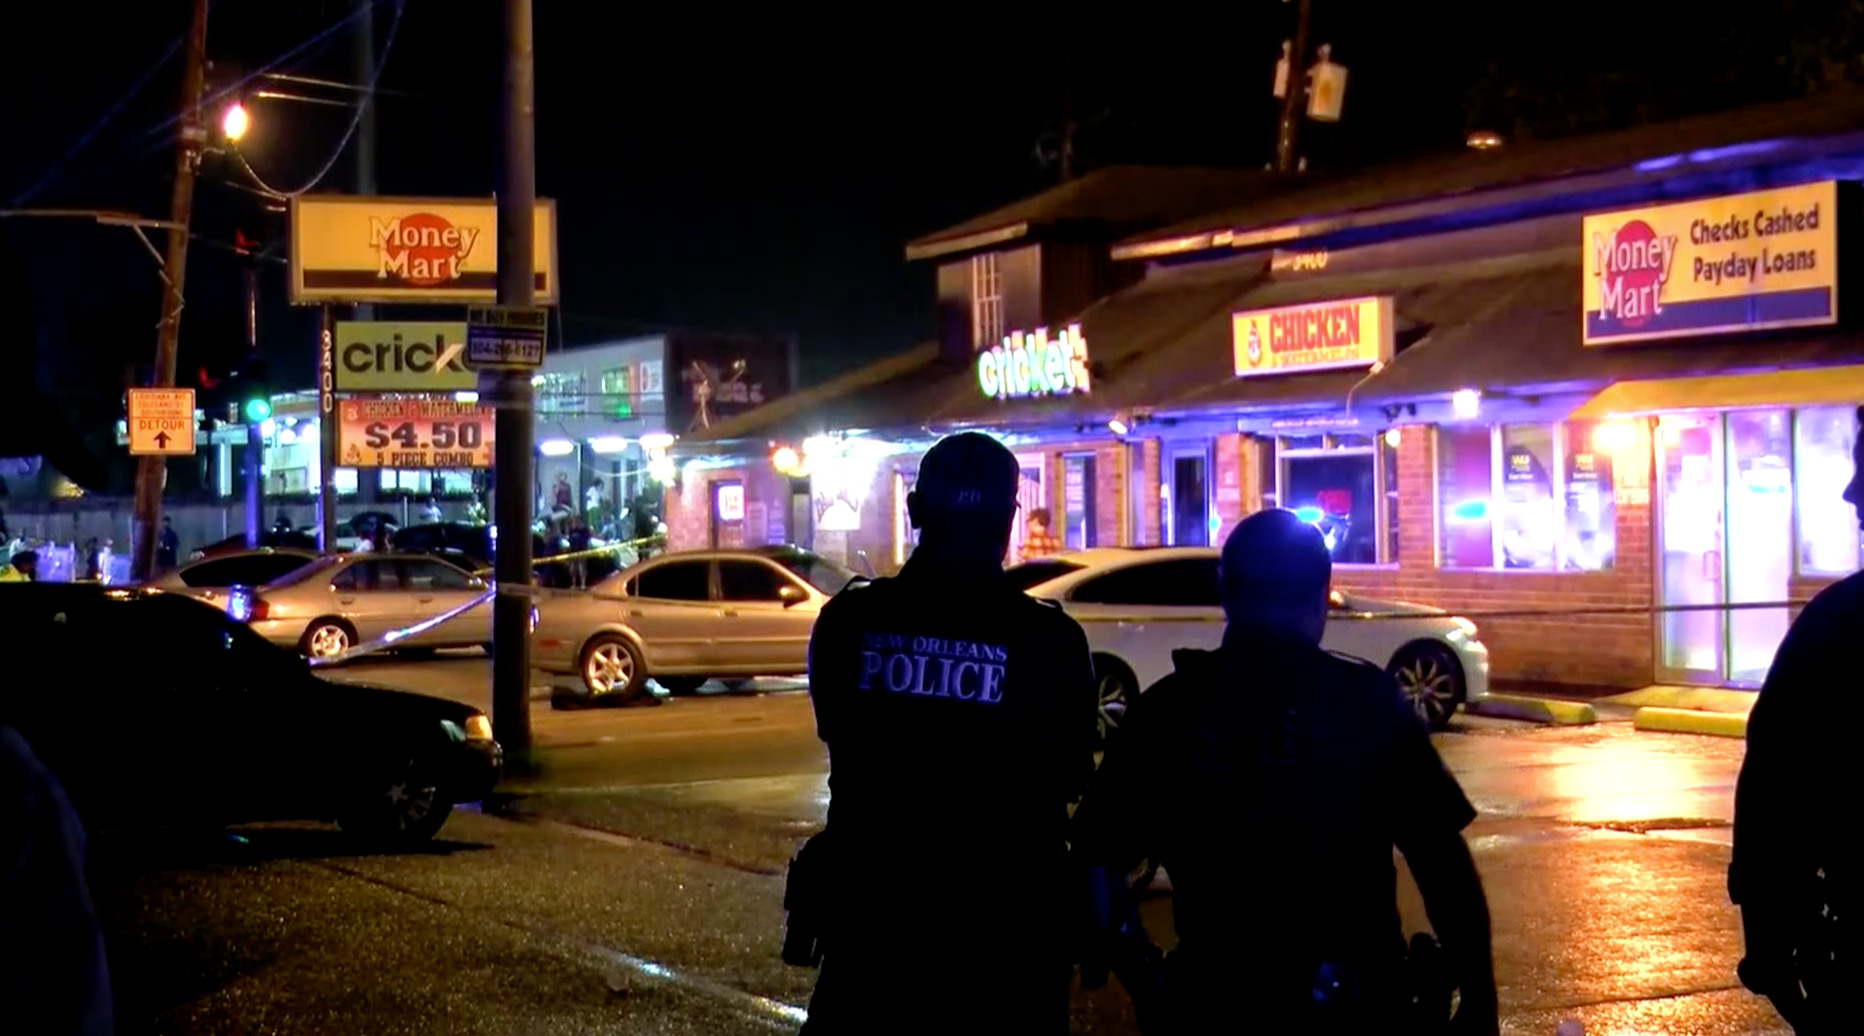 New Orleans shooting today leaves 3 dead, 7 injured - CBS News